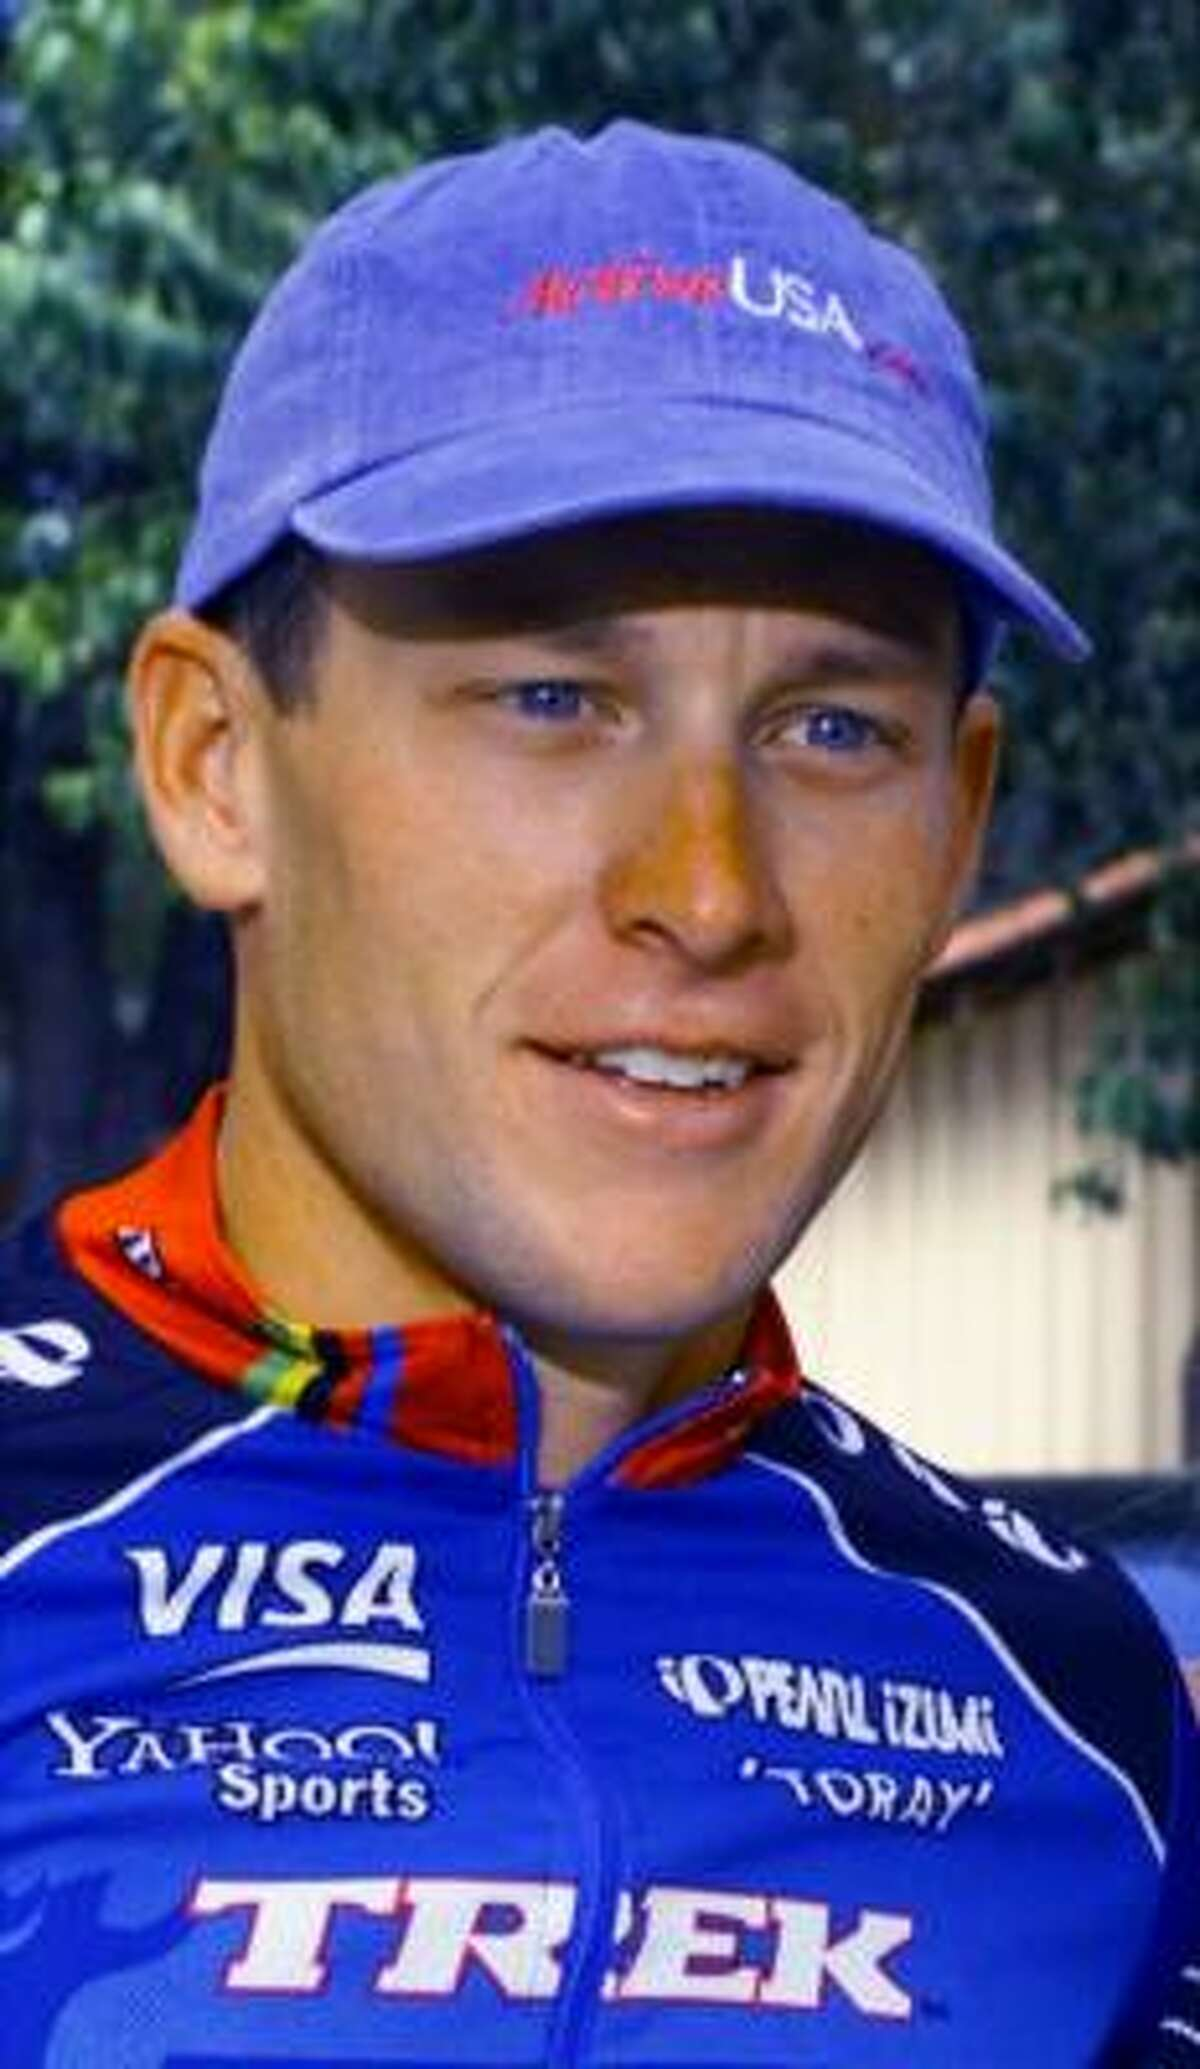 Cyclist Lance Armstrong is shown in this Oct. 8, 1999, file photo in Austin, Texas. Before Armstrong conquered cancer and triumphed at the Tour de France, the Race for the Roses was a small competition among friends. Since winning the famed yellow jersey abroad, the hometown race has grown into a full-fledged charity event expected to draw 8,000 cyclists this weekend in Austin.